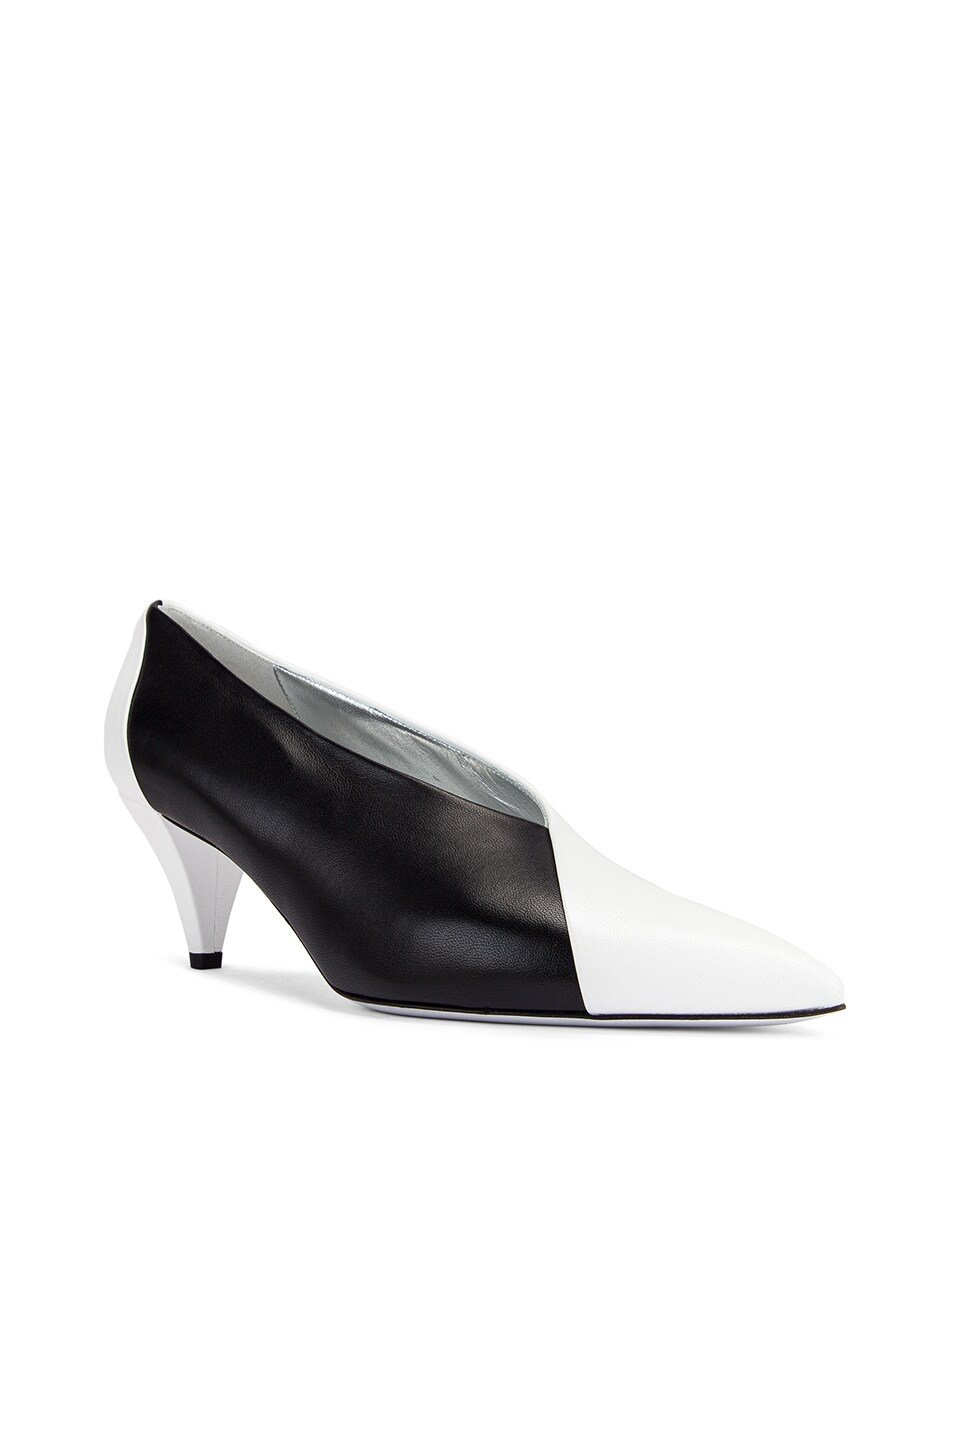 Image 2 of Givenchy Soft Two Tone Heels in Black & White